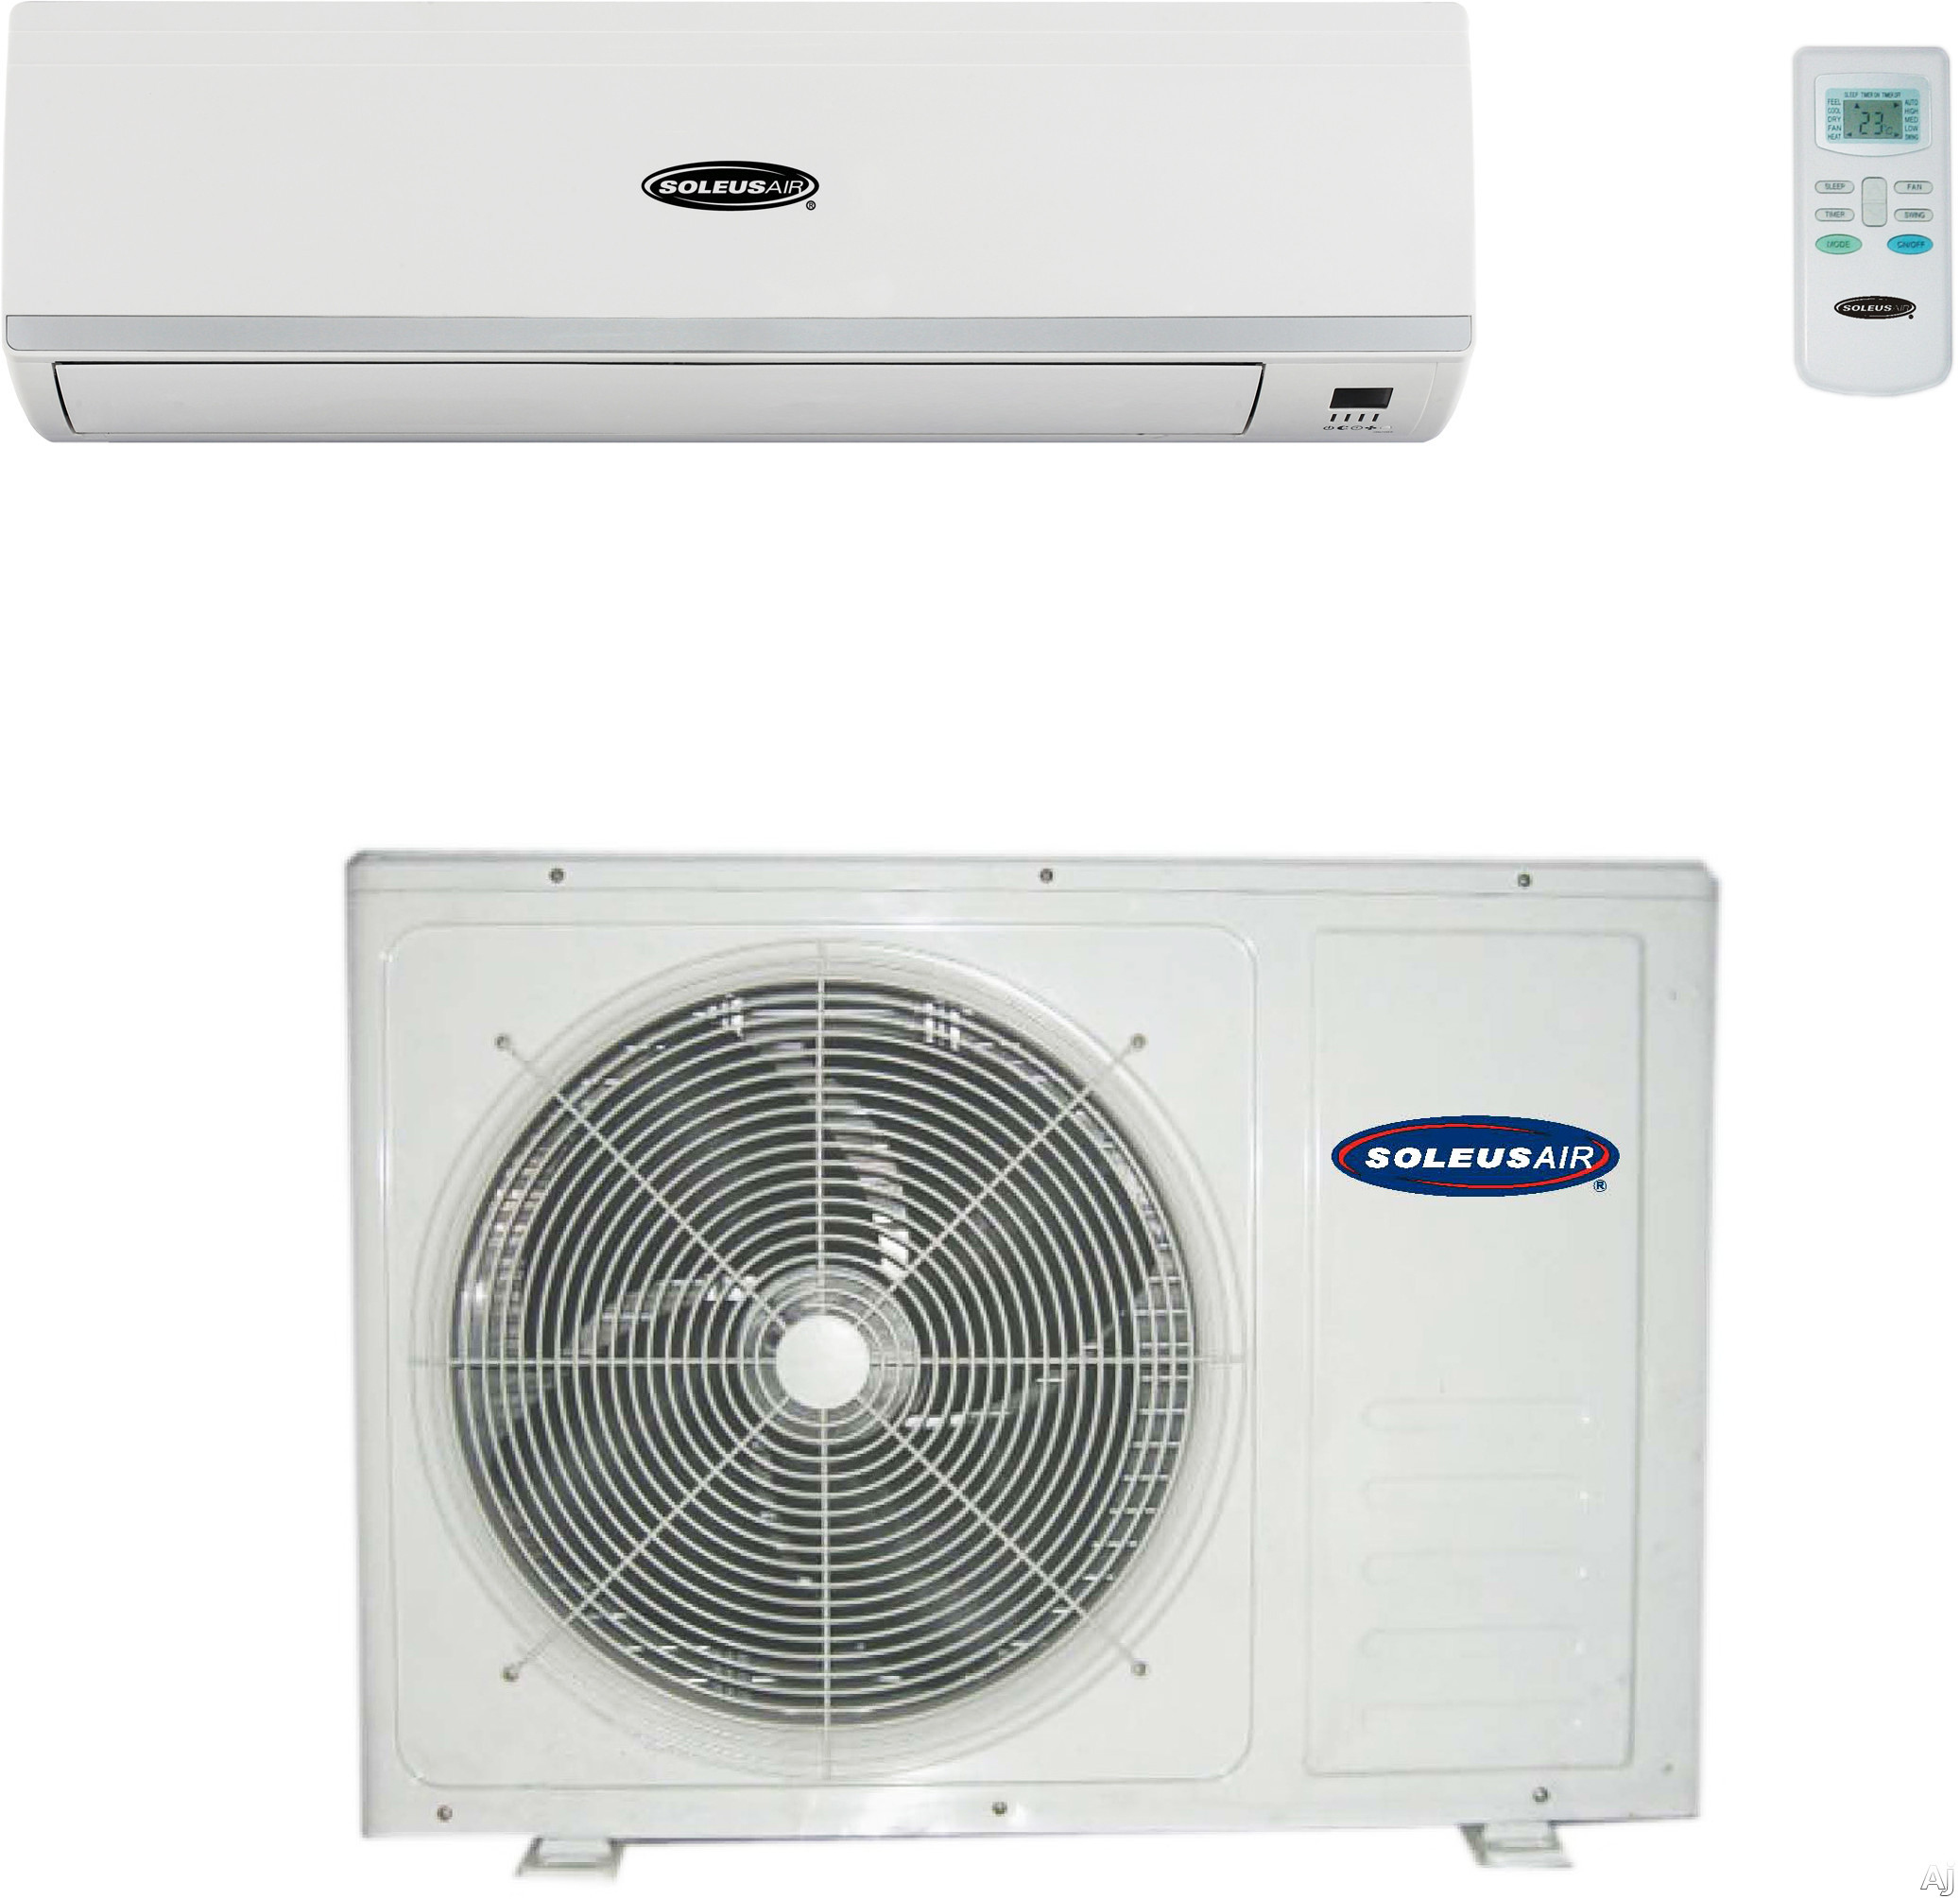 Gallery Chapel Hill NC Photos. on names of different air conditioners #173468